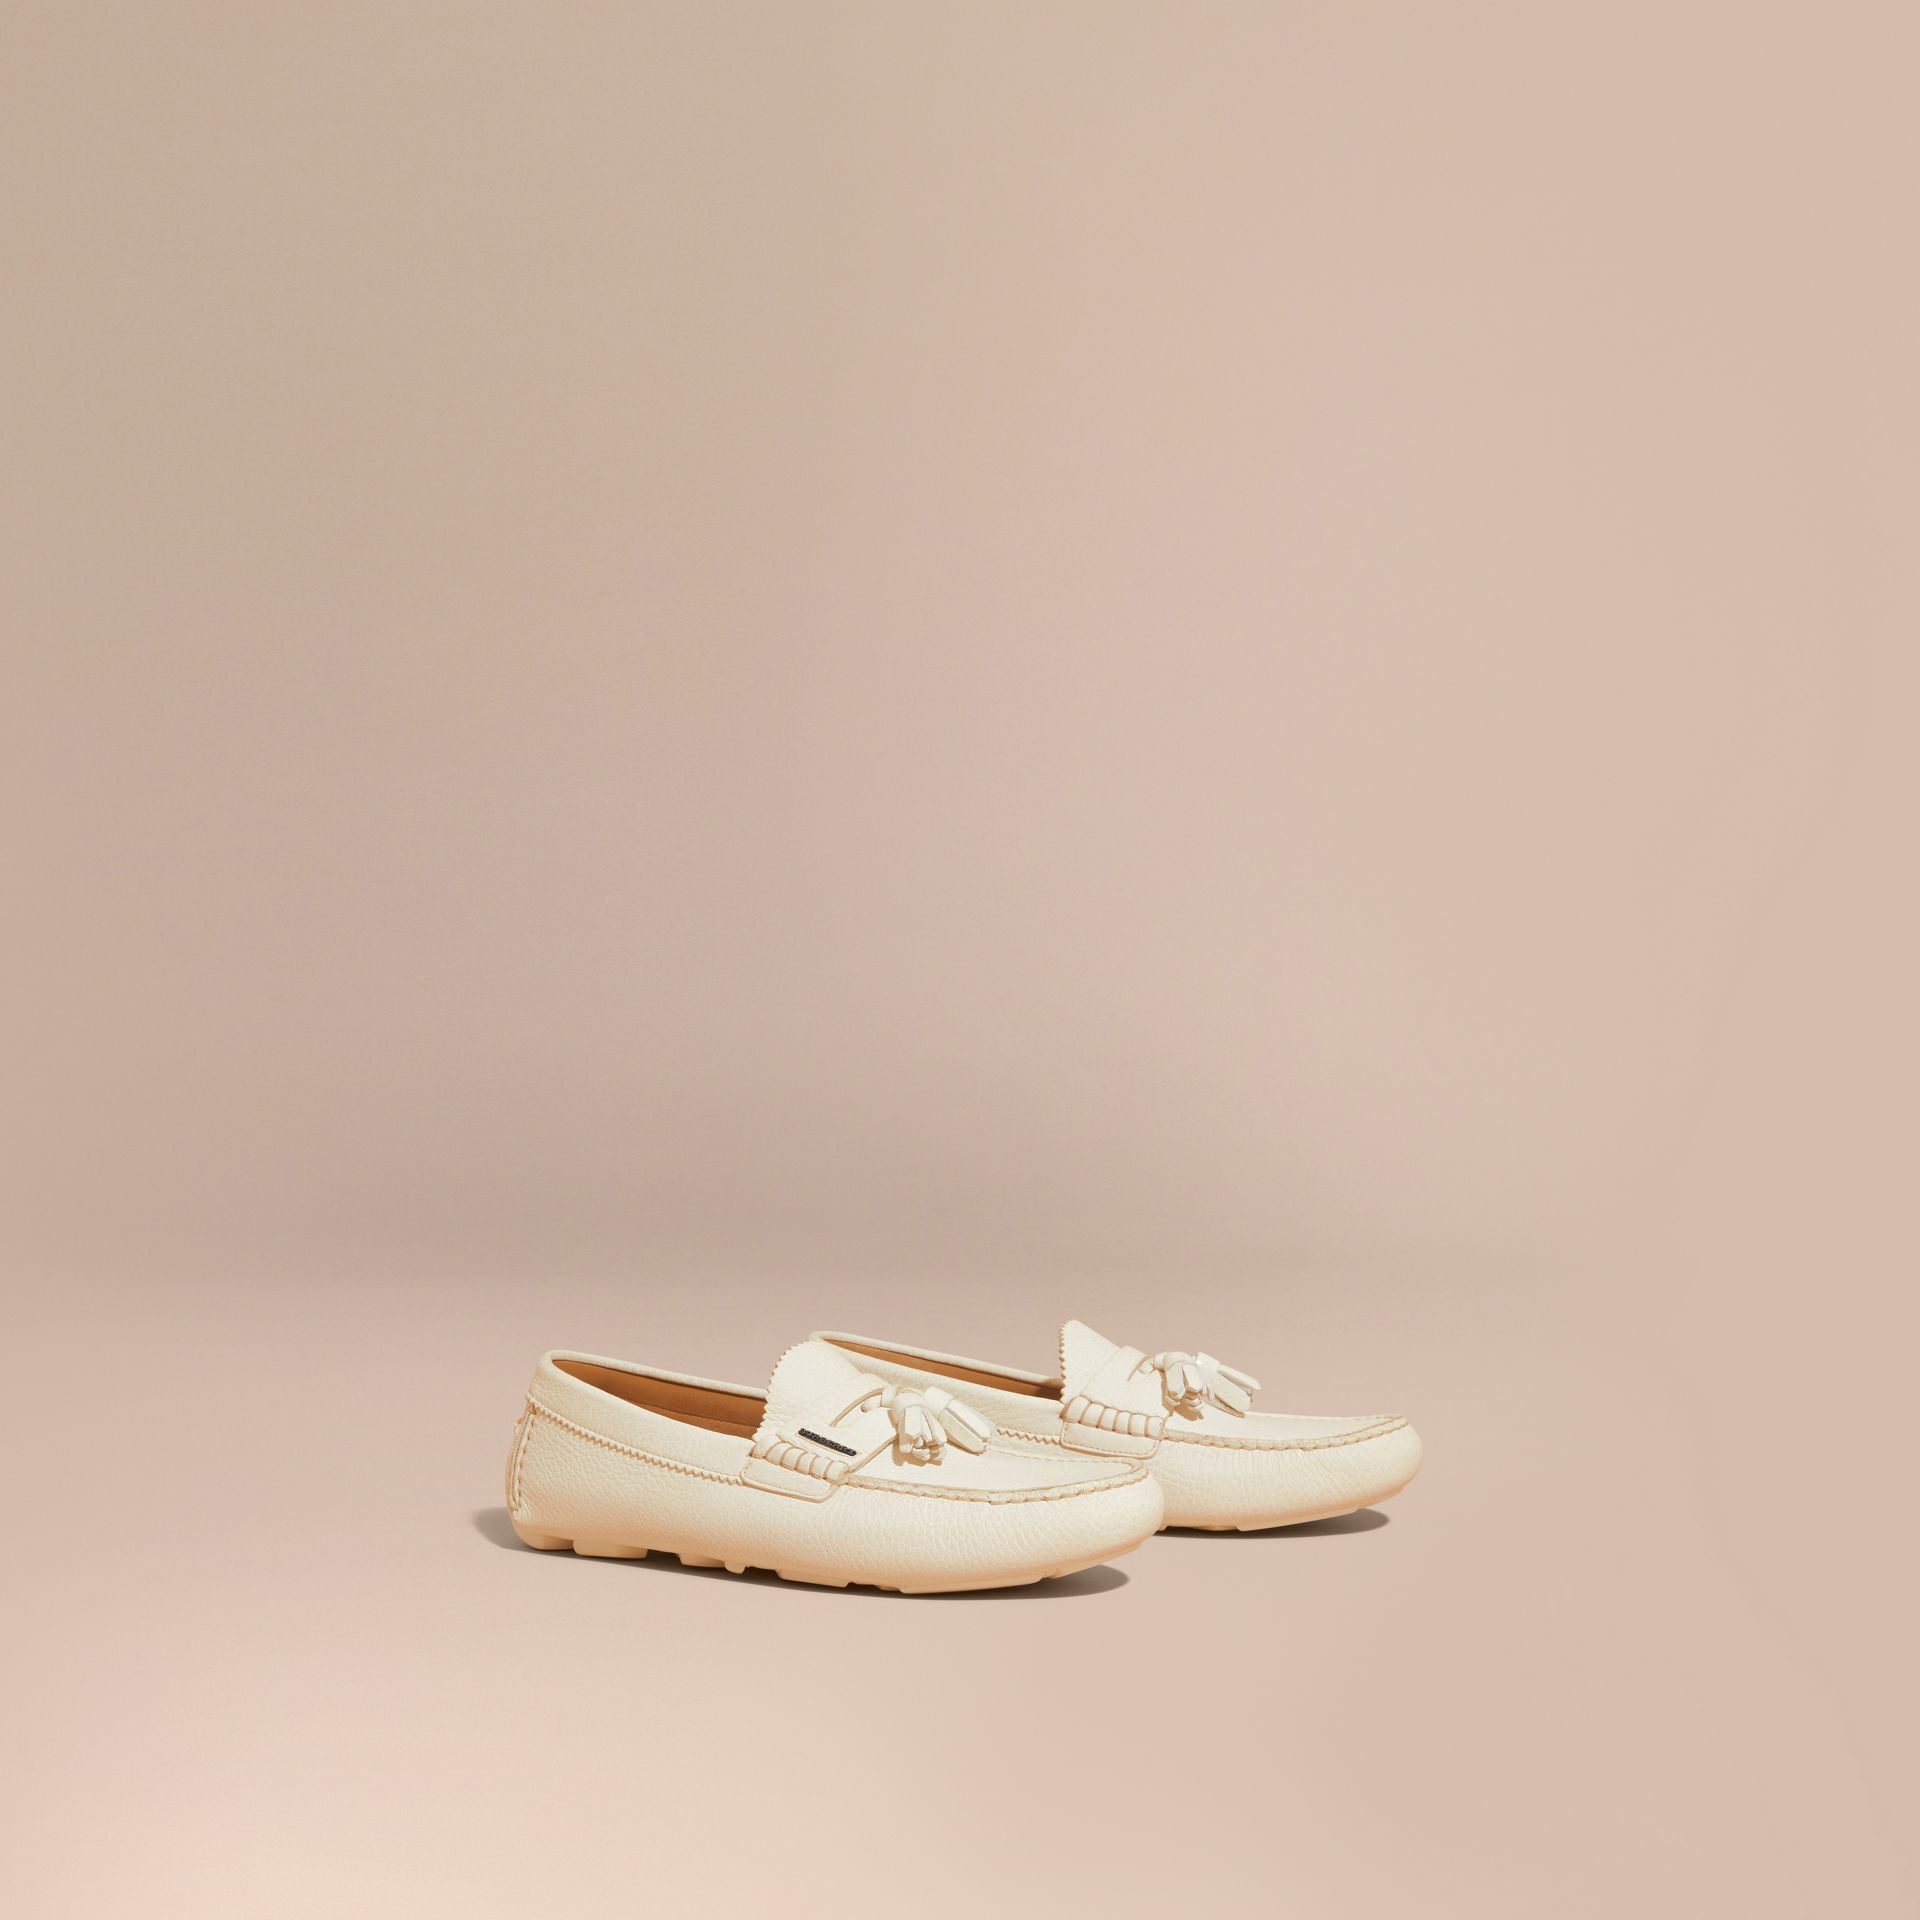 Tasselled Grainy Leather Loafers Off White - gallery image 1